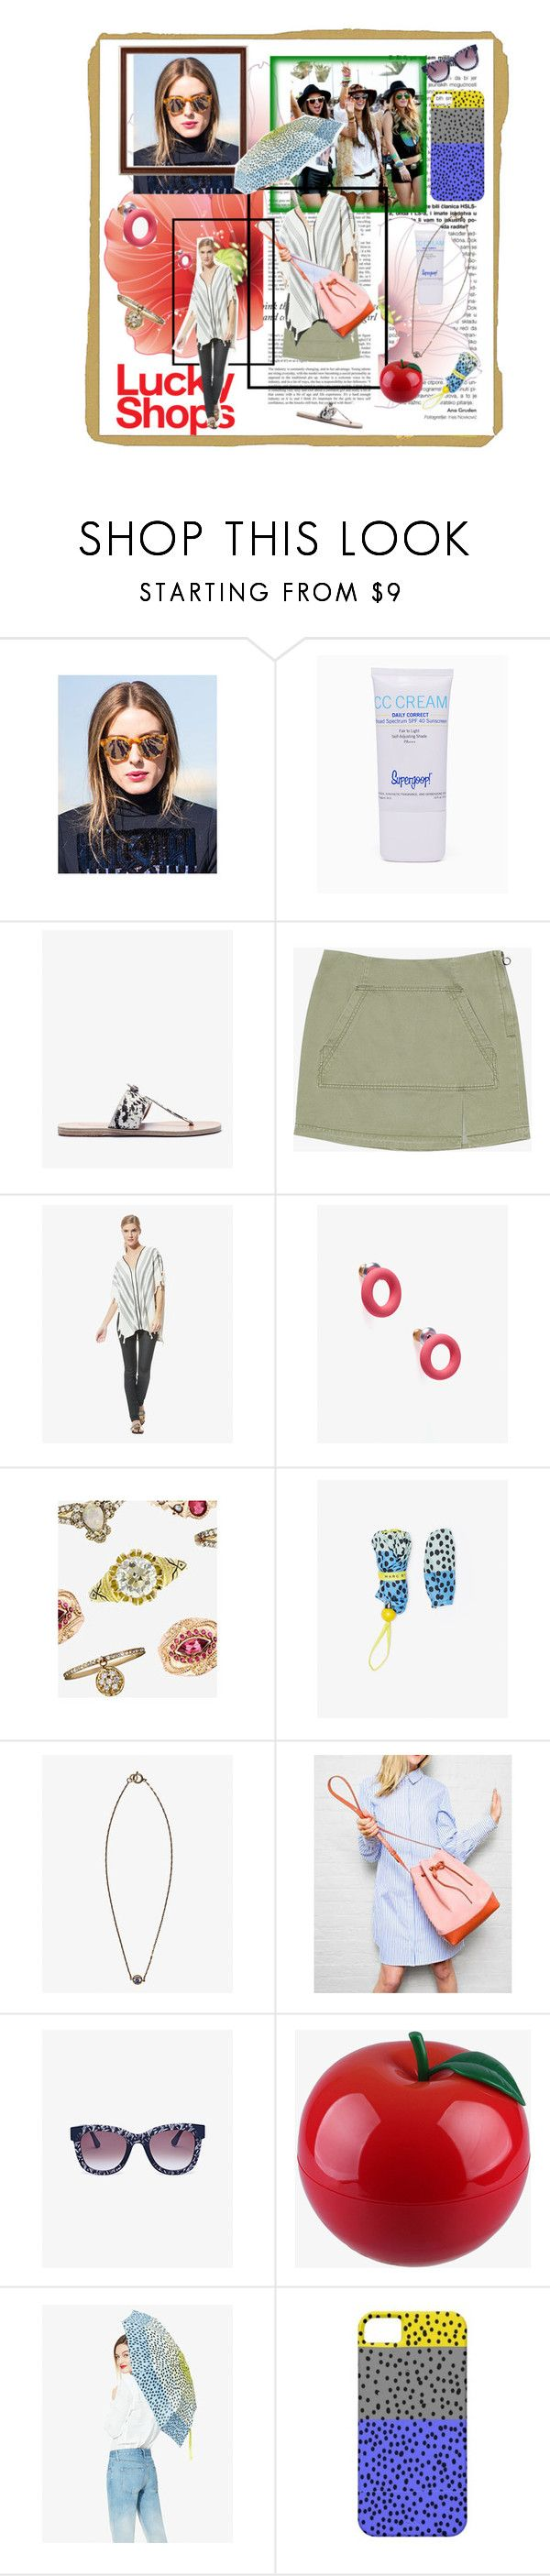 """""""Lucky Shops -contestentry"""" by lataarv ❤ liked on Polyvore featuring Haze, Rifle Paper Co, Supergoop!, Ancient Greek Sandals, Marc by Marc Jacobs, Être Cécile, Susan Alexandra, Petit Bateau, Thierry Lasry and TONYMOLY"""